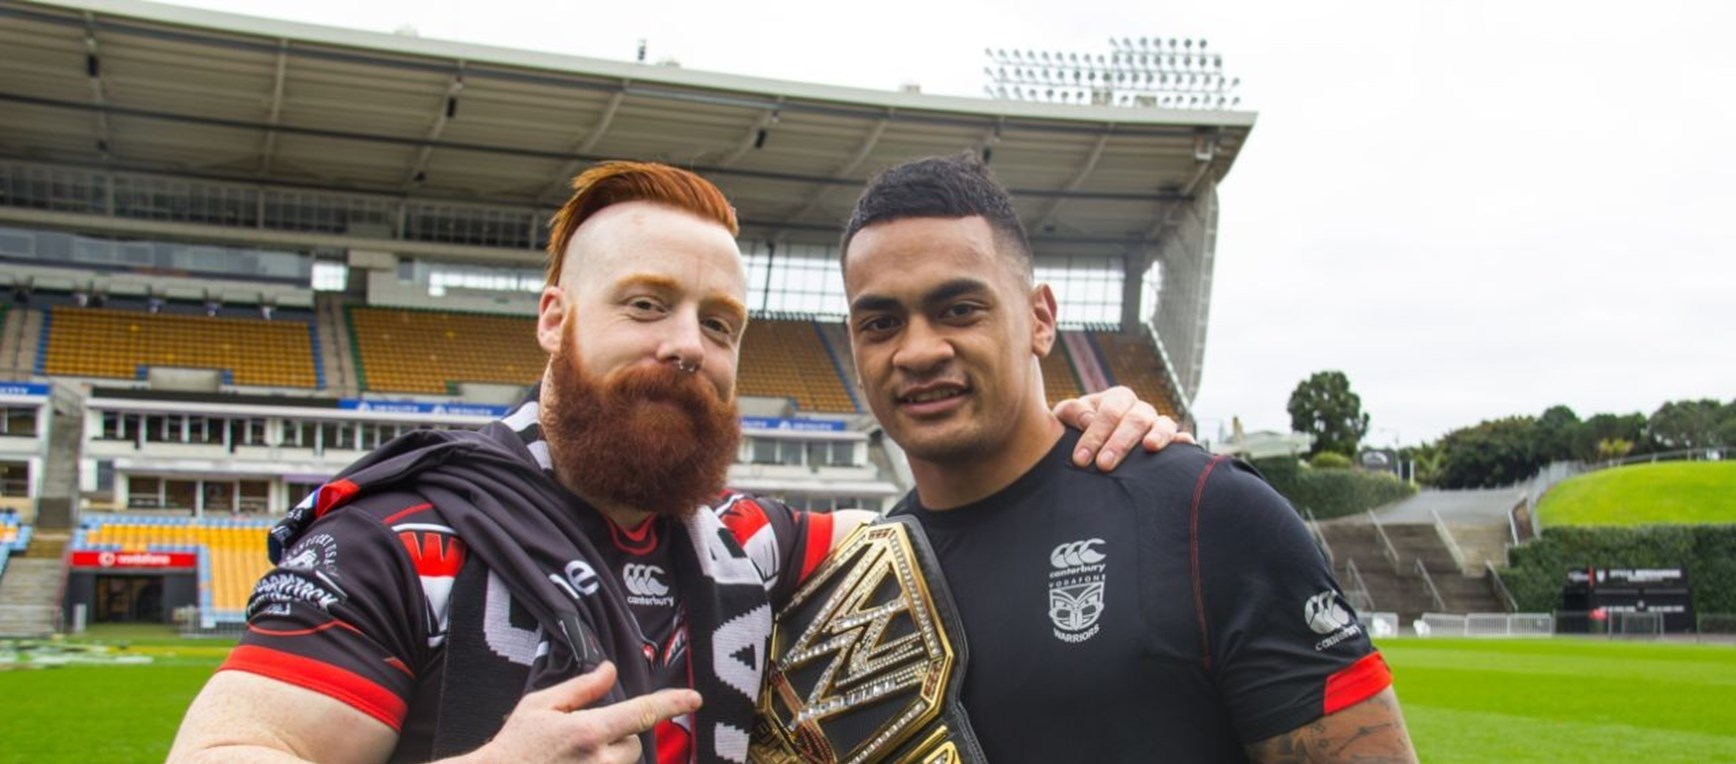 Sheamus visit in pictures